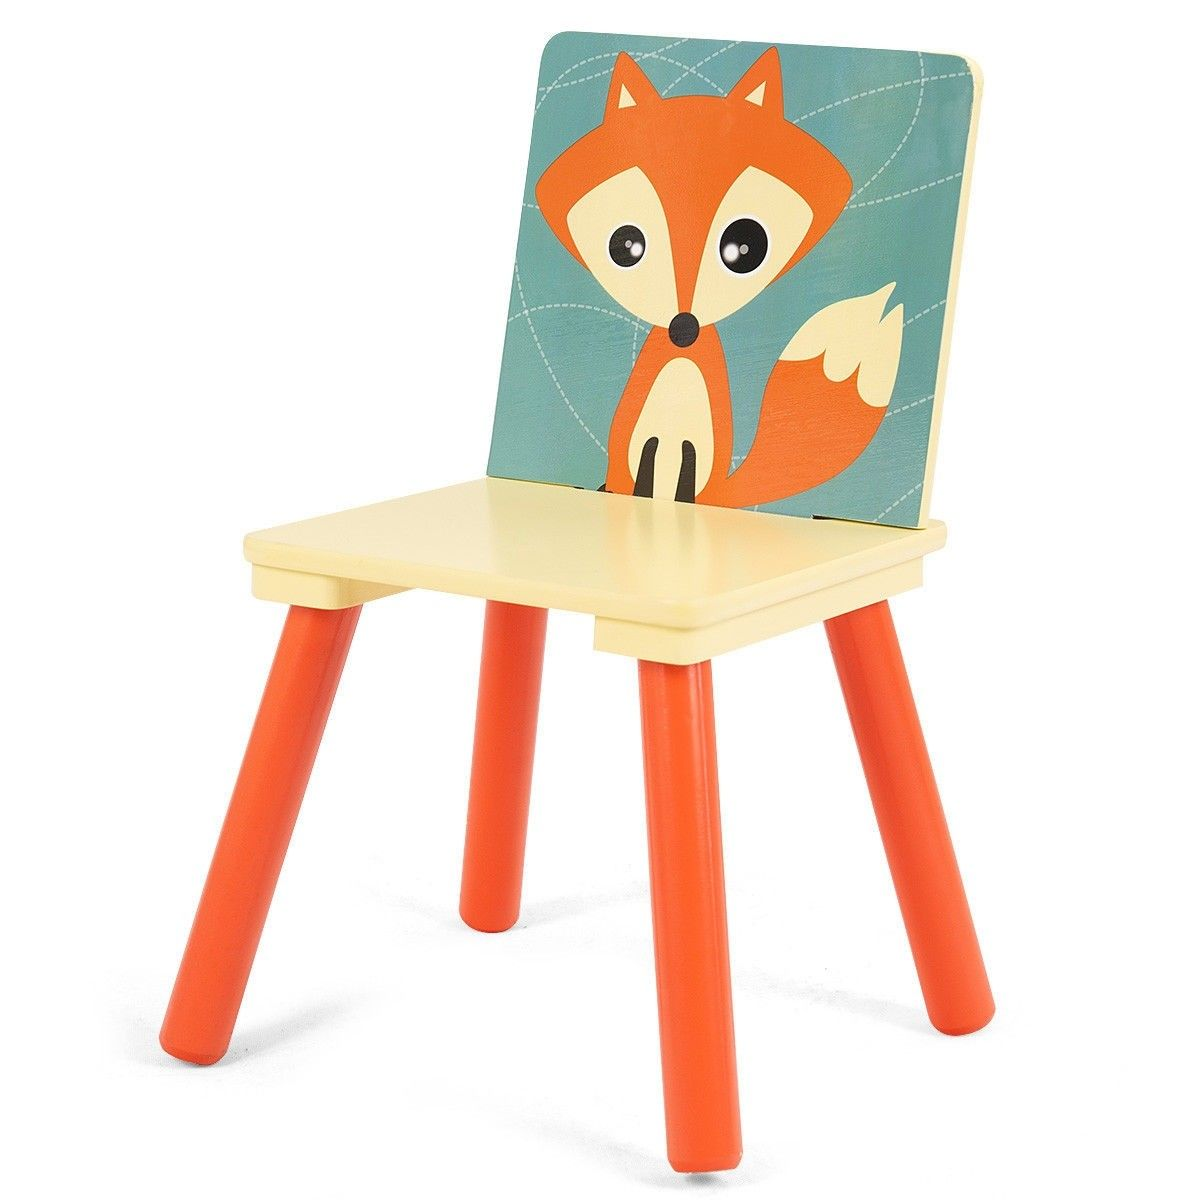 Wooden Cartoon Kids Table Chairs Set Of 2 Activity Table Desk Sets For Playing With Cartoon Pattern Material Mdf Kid Table Kids Table Chair Set Kids Furniture